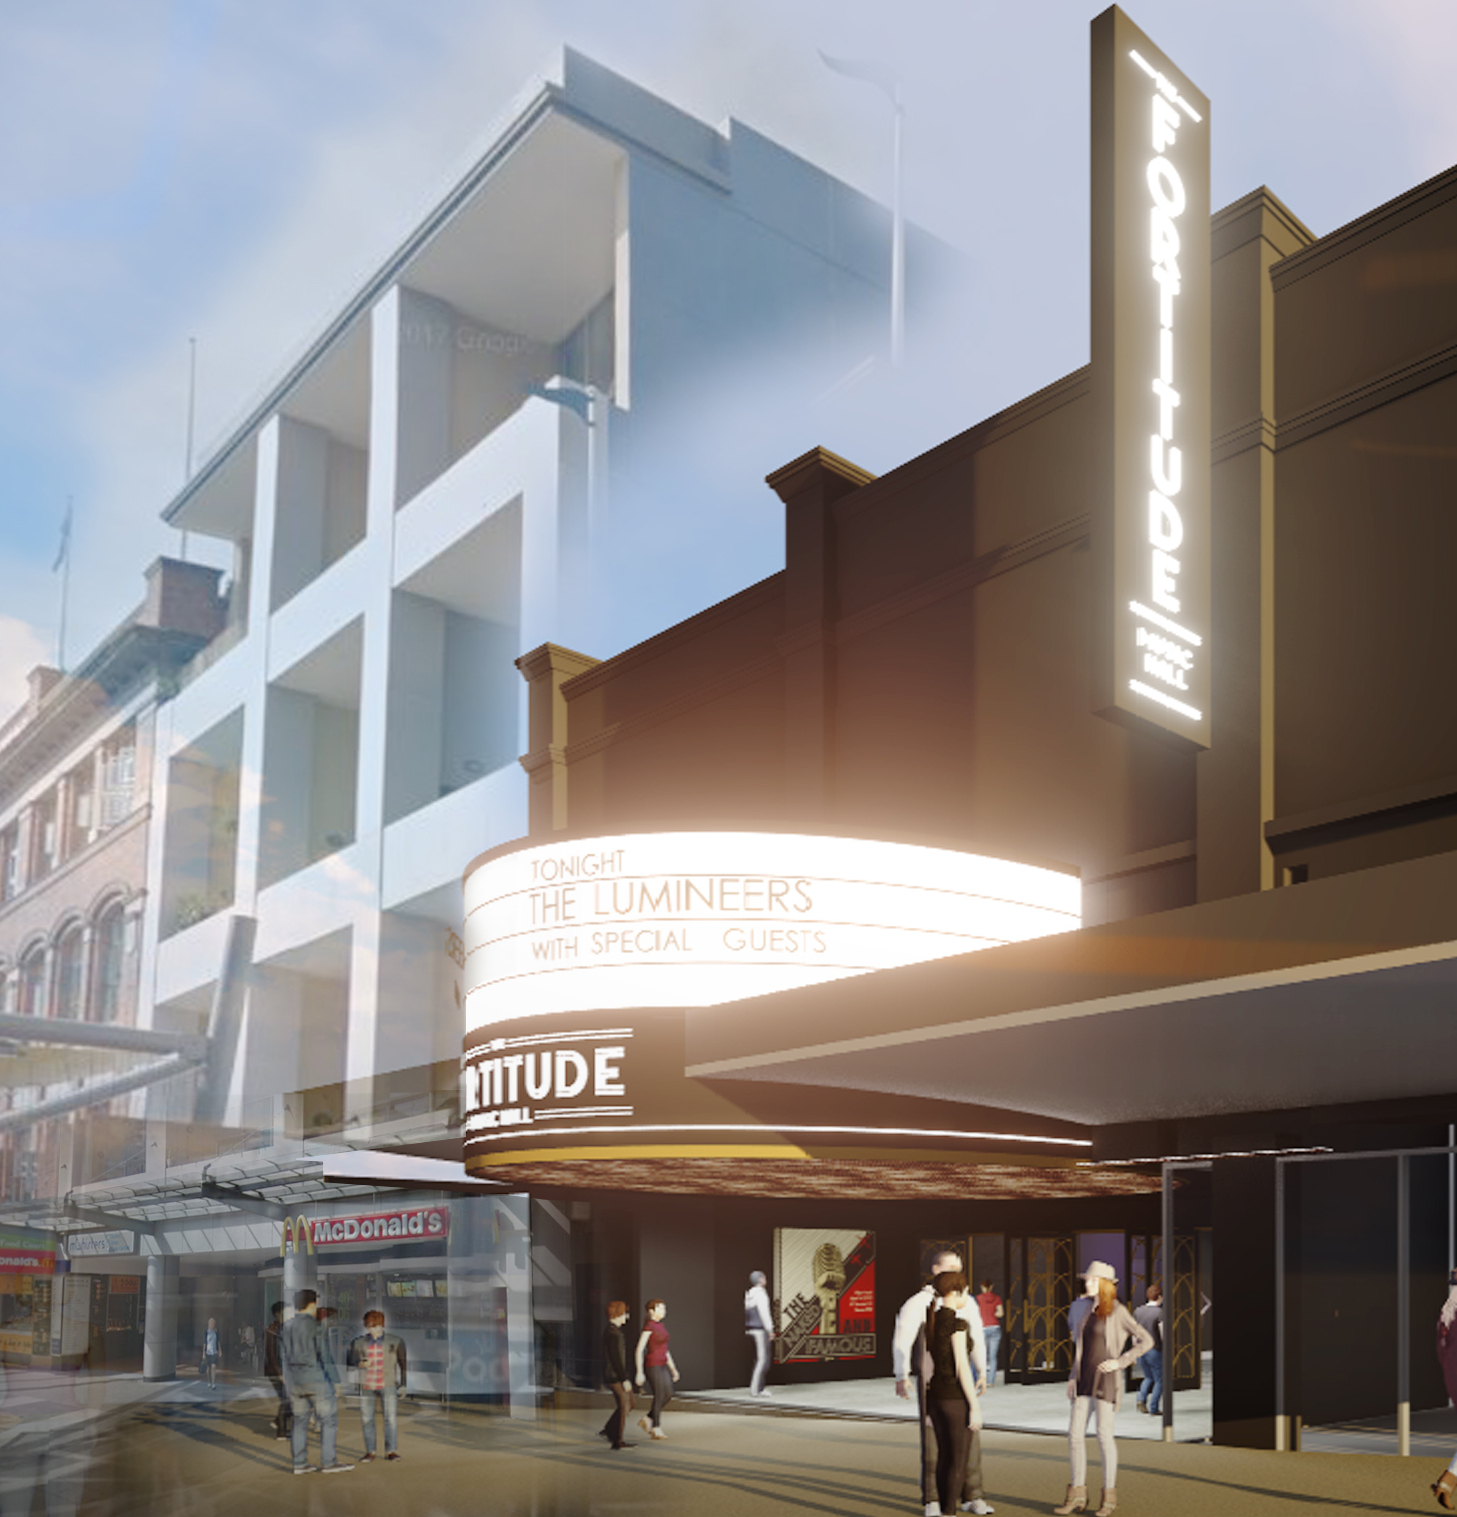 Queensland architect Andrew Gutteridge from Arkhefield is behind the venue's design. The front façade offers a modern twist on Art Deco style.